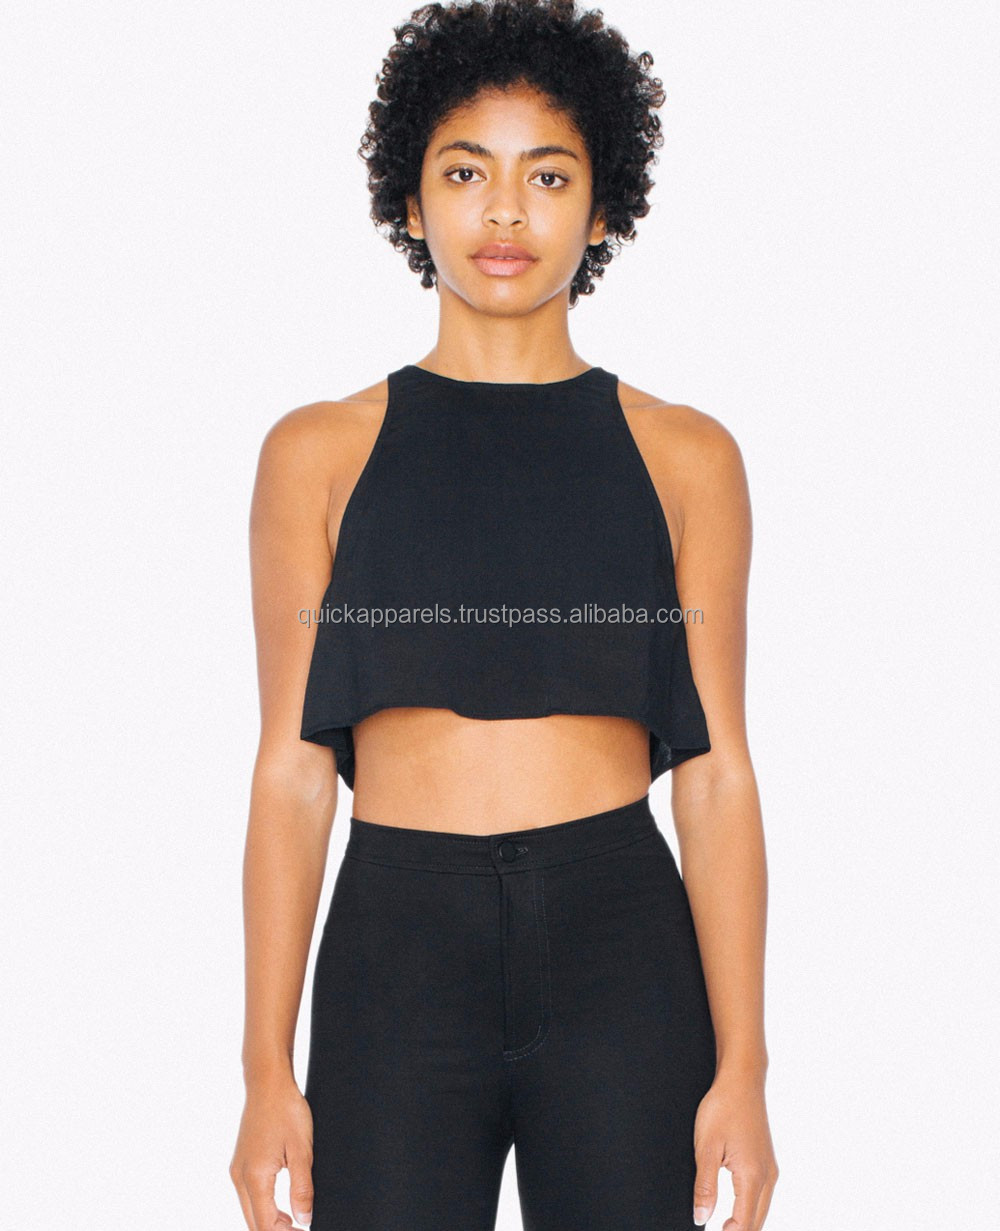 latest design Knitted Striped Crop Tops For Women or Girl